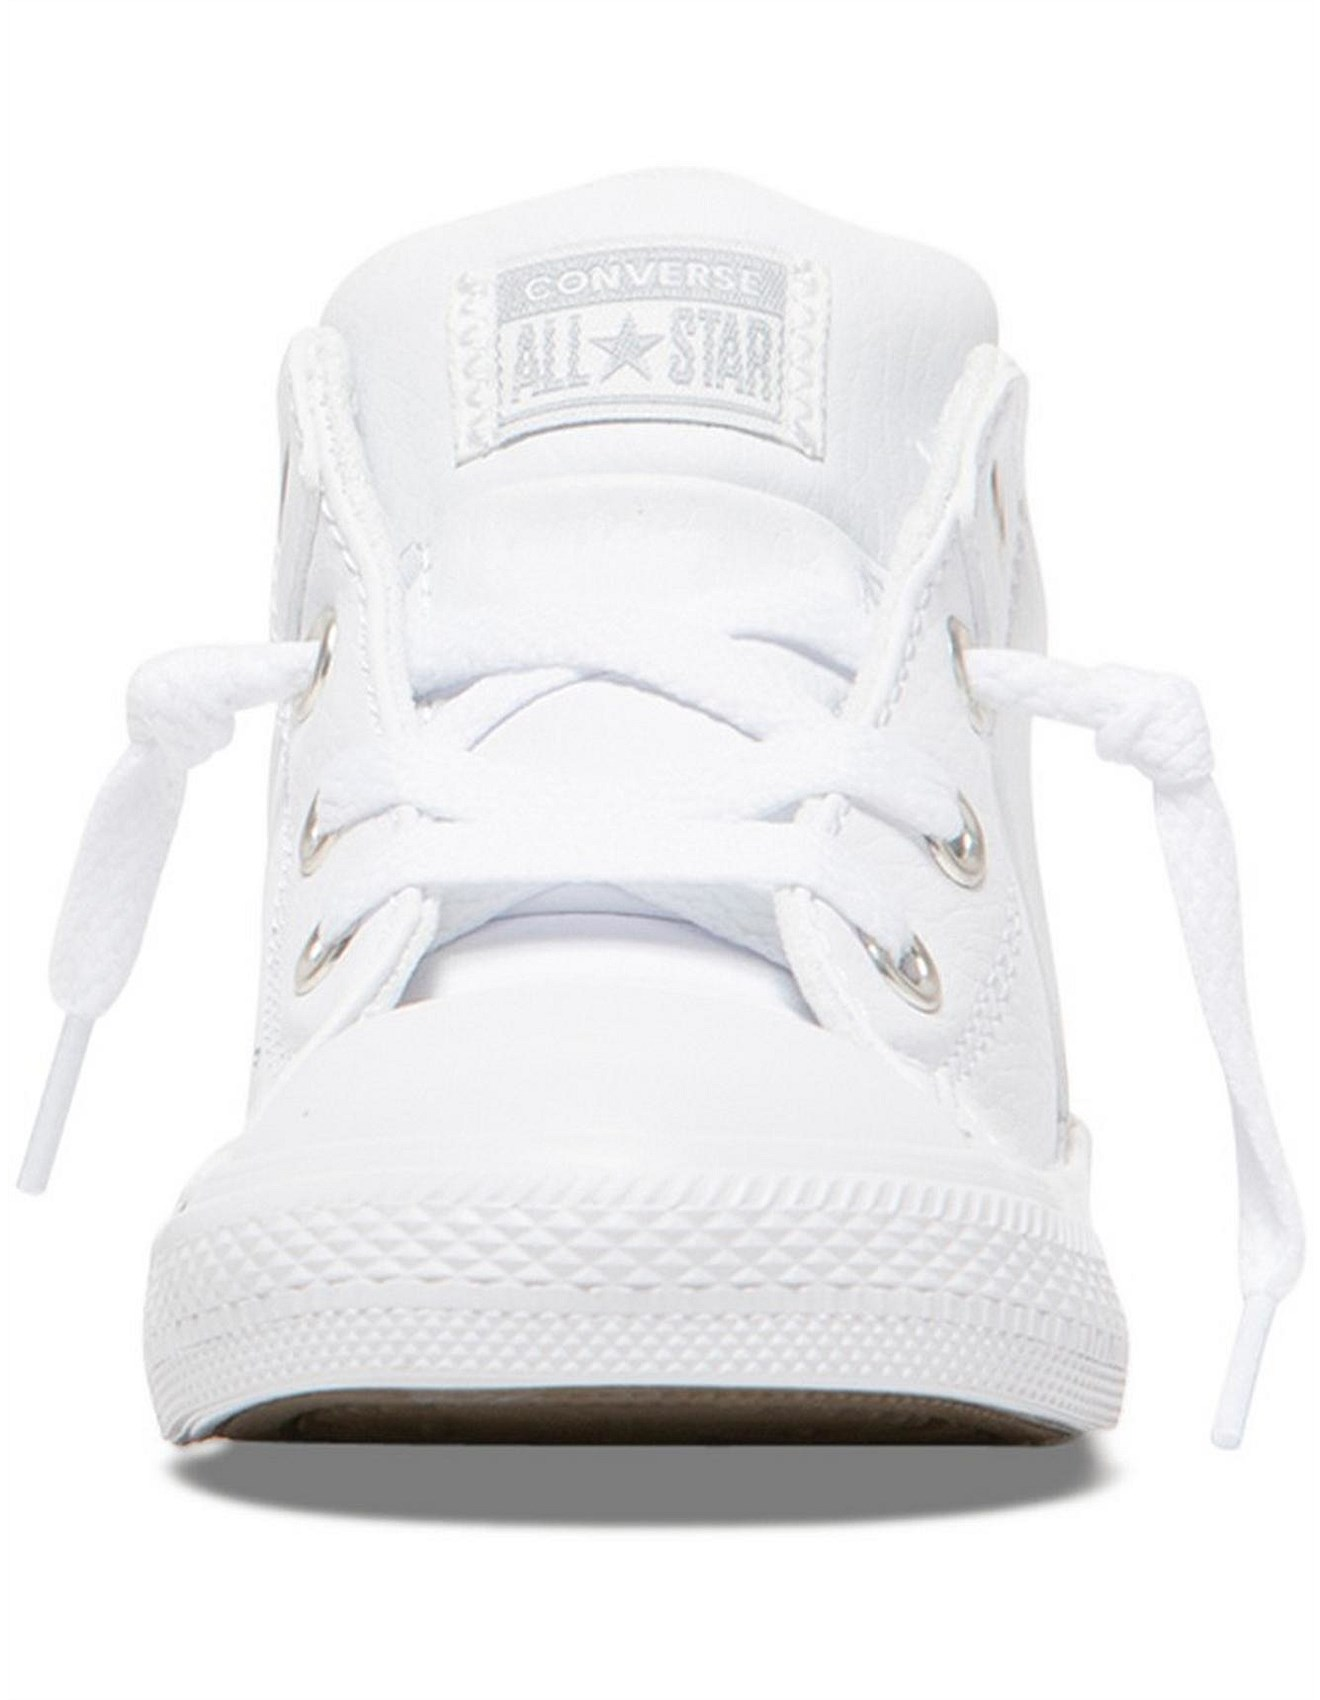 Synthetic Upper Converse CT Axel Toddler Shoes White